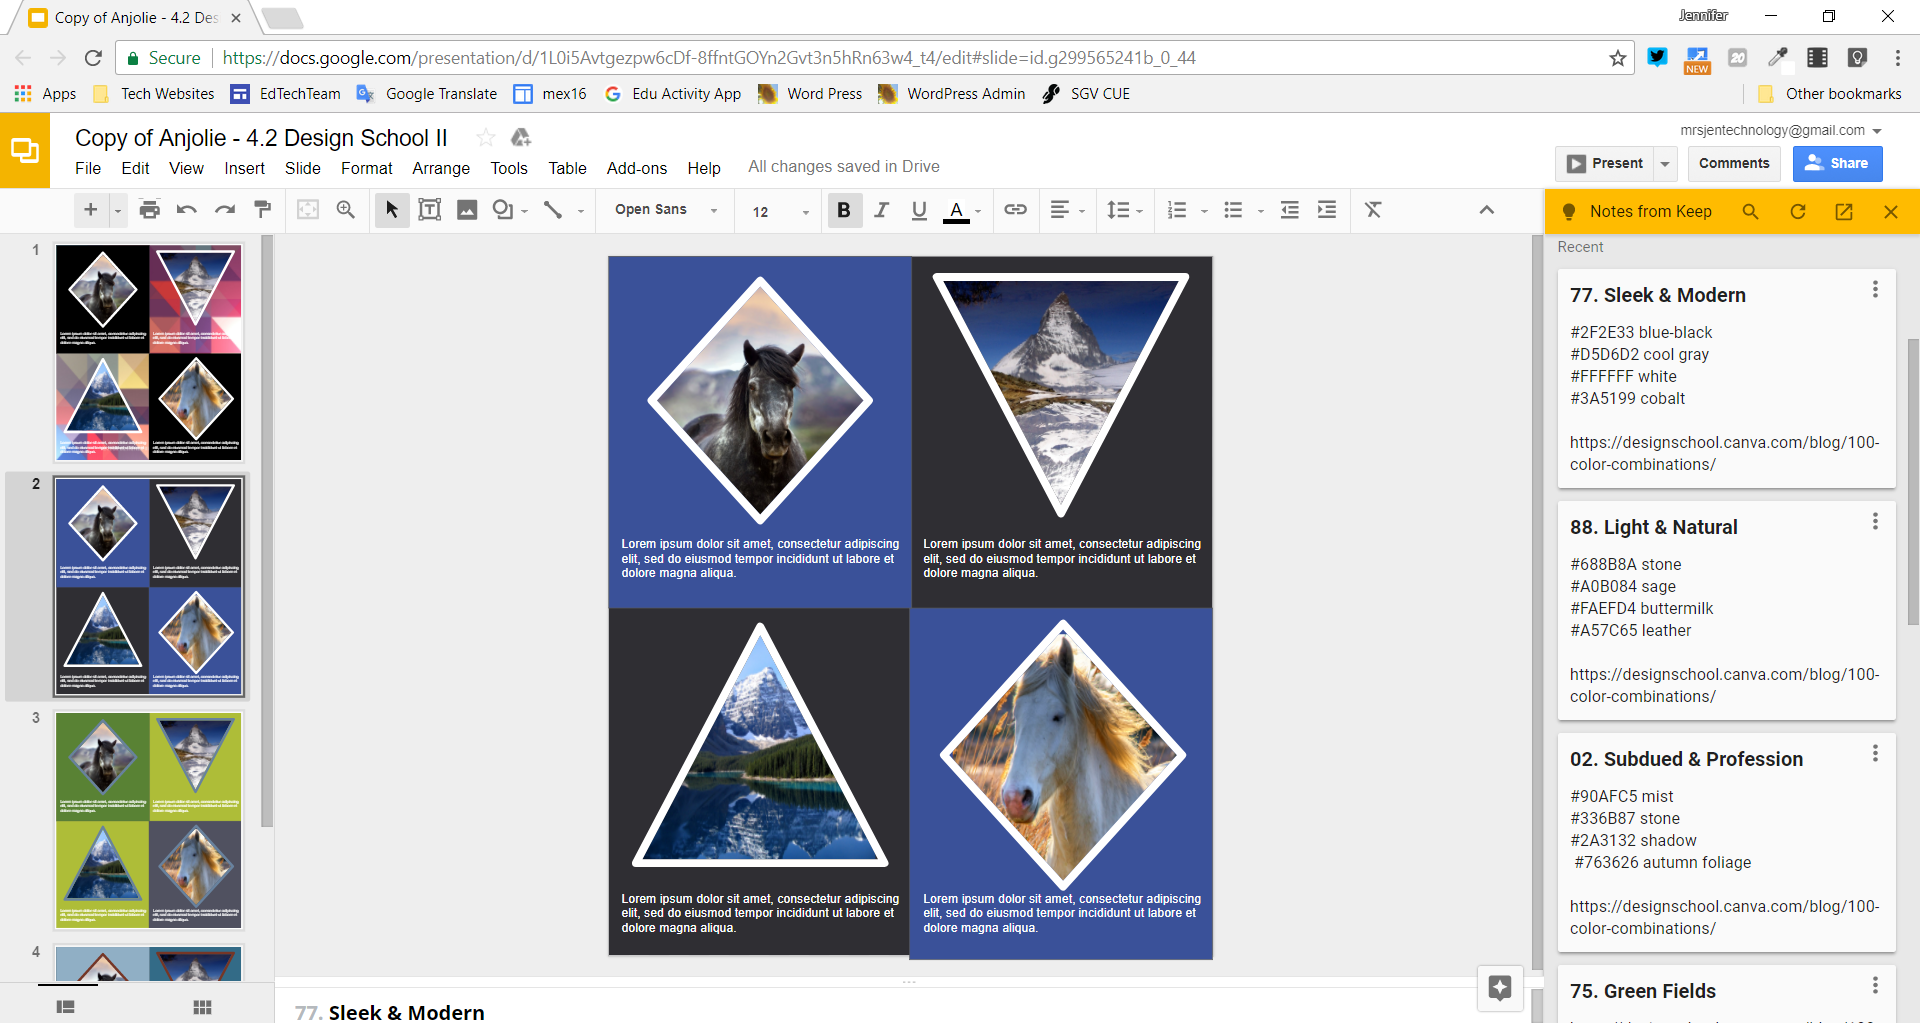 This is an example of storing and using yearbook key information in Google Keep.